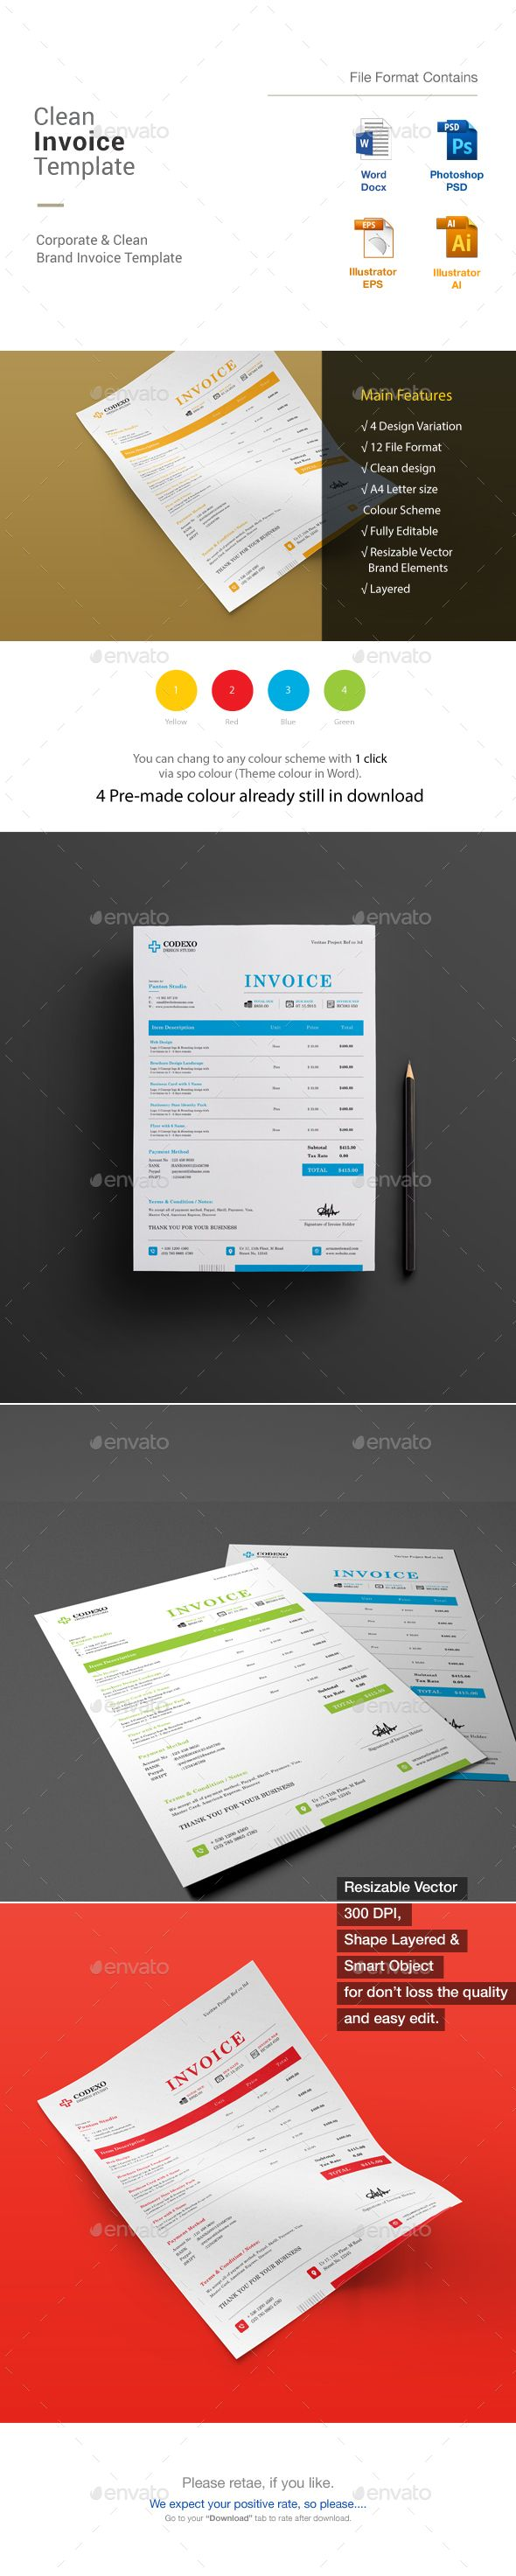 how to create a proposal template in word%0A  Clean Invoice   Proposals  u     Invoices  Stationery